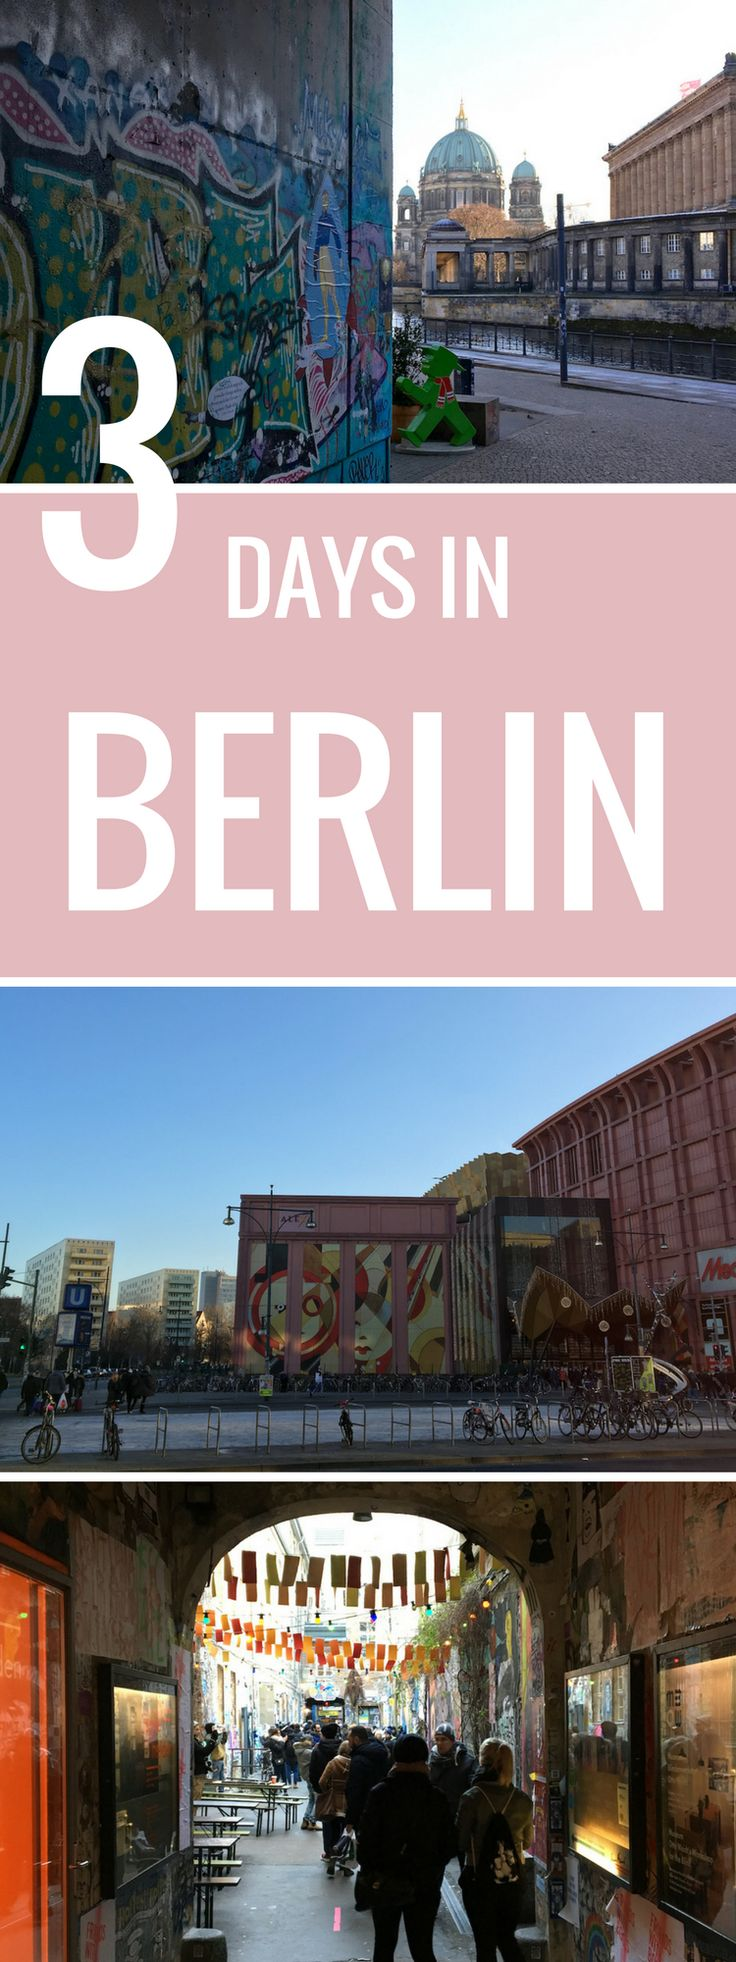 Berlin is such a great city! More influenced by eastern Europe than I expected. We had three days in Berlin and celebrated New Years Eve there. Christmas is the best time to travel. Have 24 hours in Berlin, here is your go to list of what to do and what to see. Even if you have 48 hours or 72 hours in Berlin, I've got something for you! See a full overview of what to do and see in Berlin.